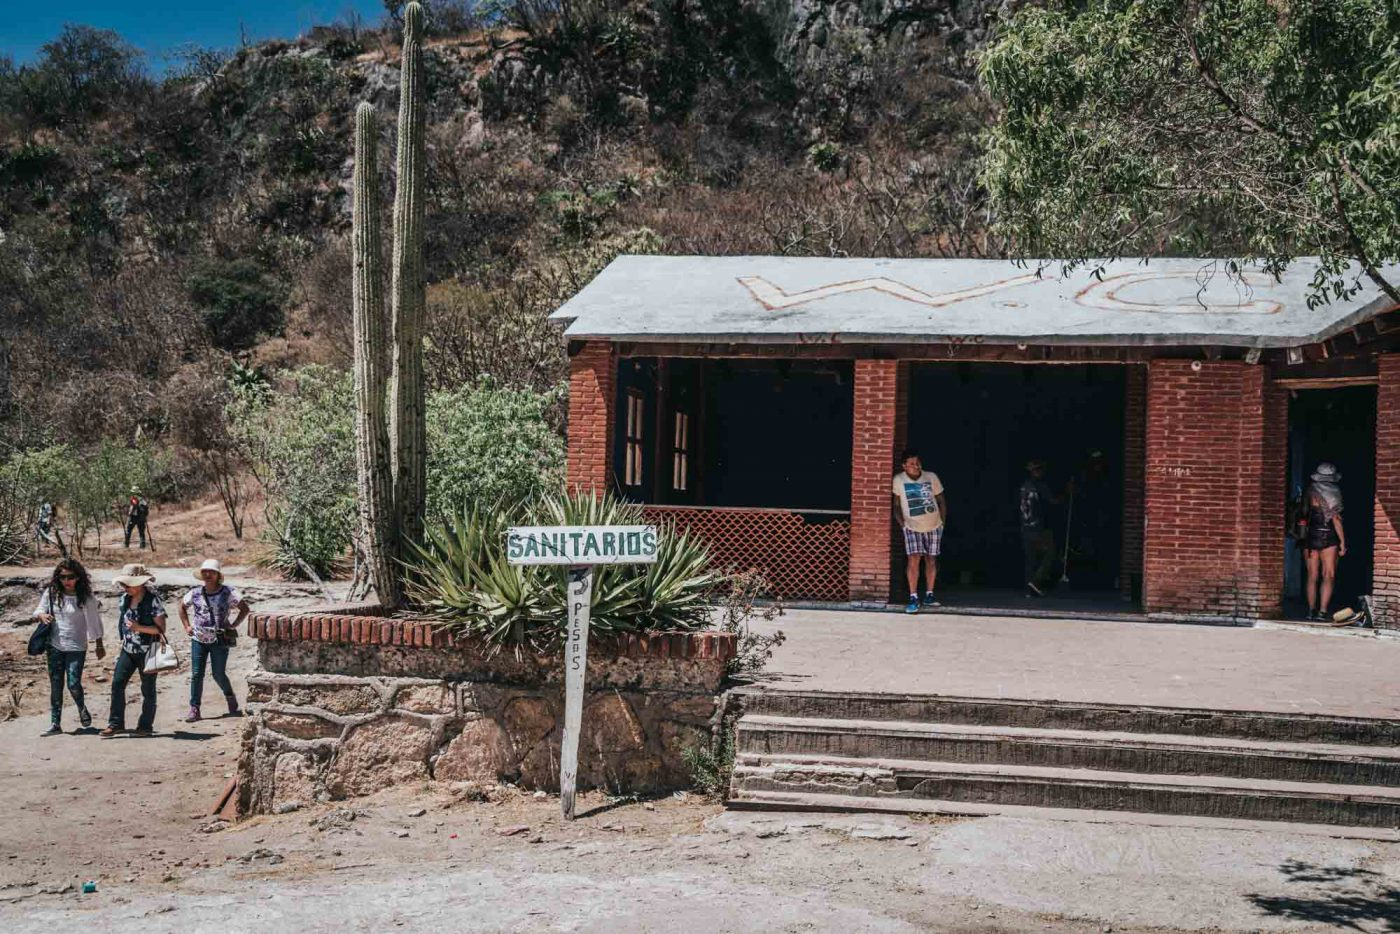 Bathroom and changing room at Hierva el Agua